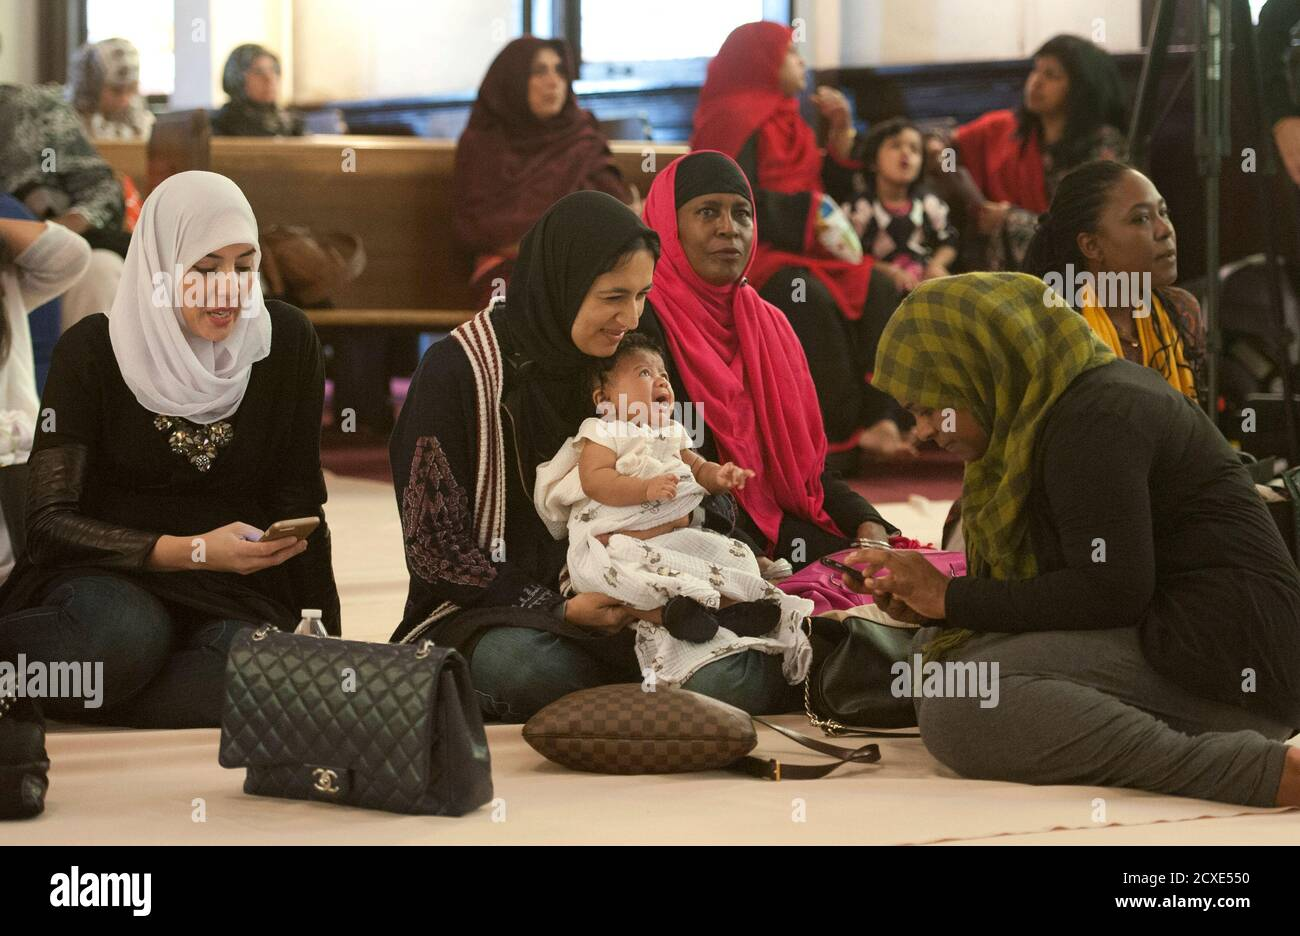 Women wait for the prayer service at the Women's Mosque of America in downtown Los Angeles, California January 30, 2015.  The first mosque in the United States to be solely dedicated to women launched with a women-led prayer service.  REUTERS/Lori Shepler   (UNITED STATES - Tags: RELIGION SOCIETY) Stock Photo